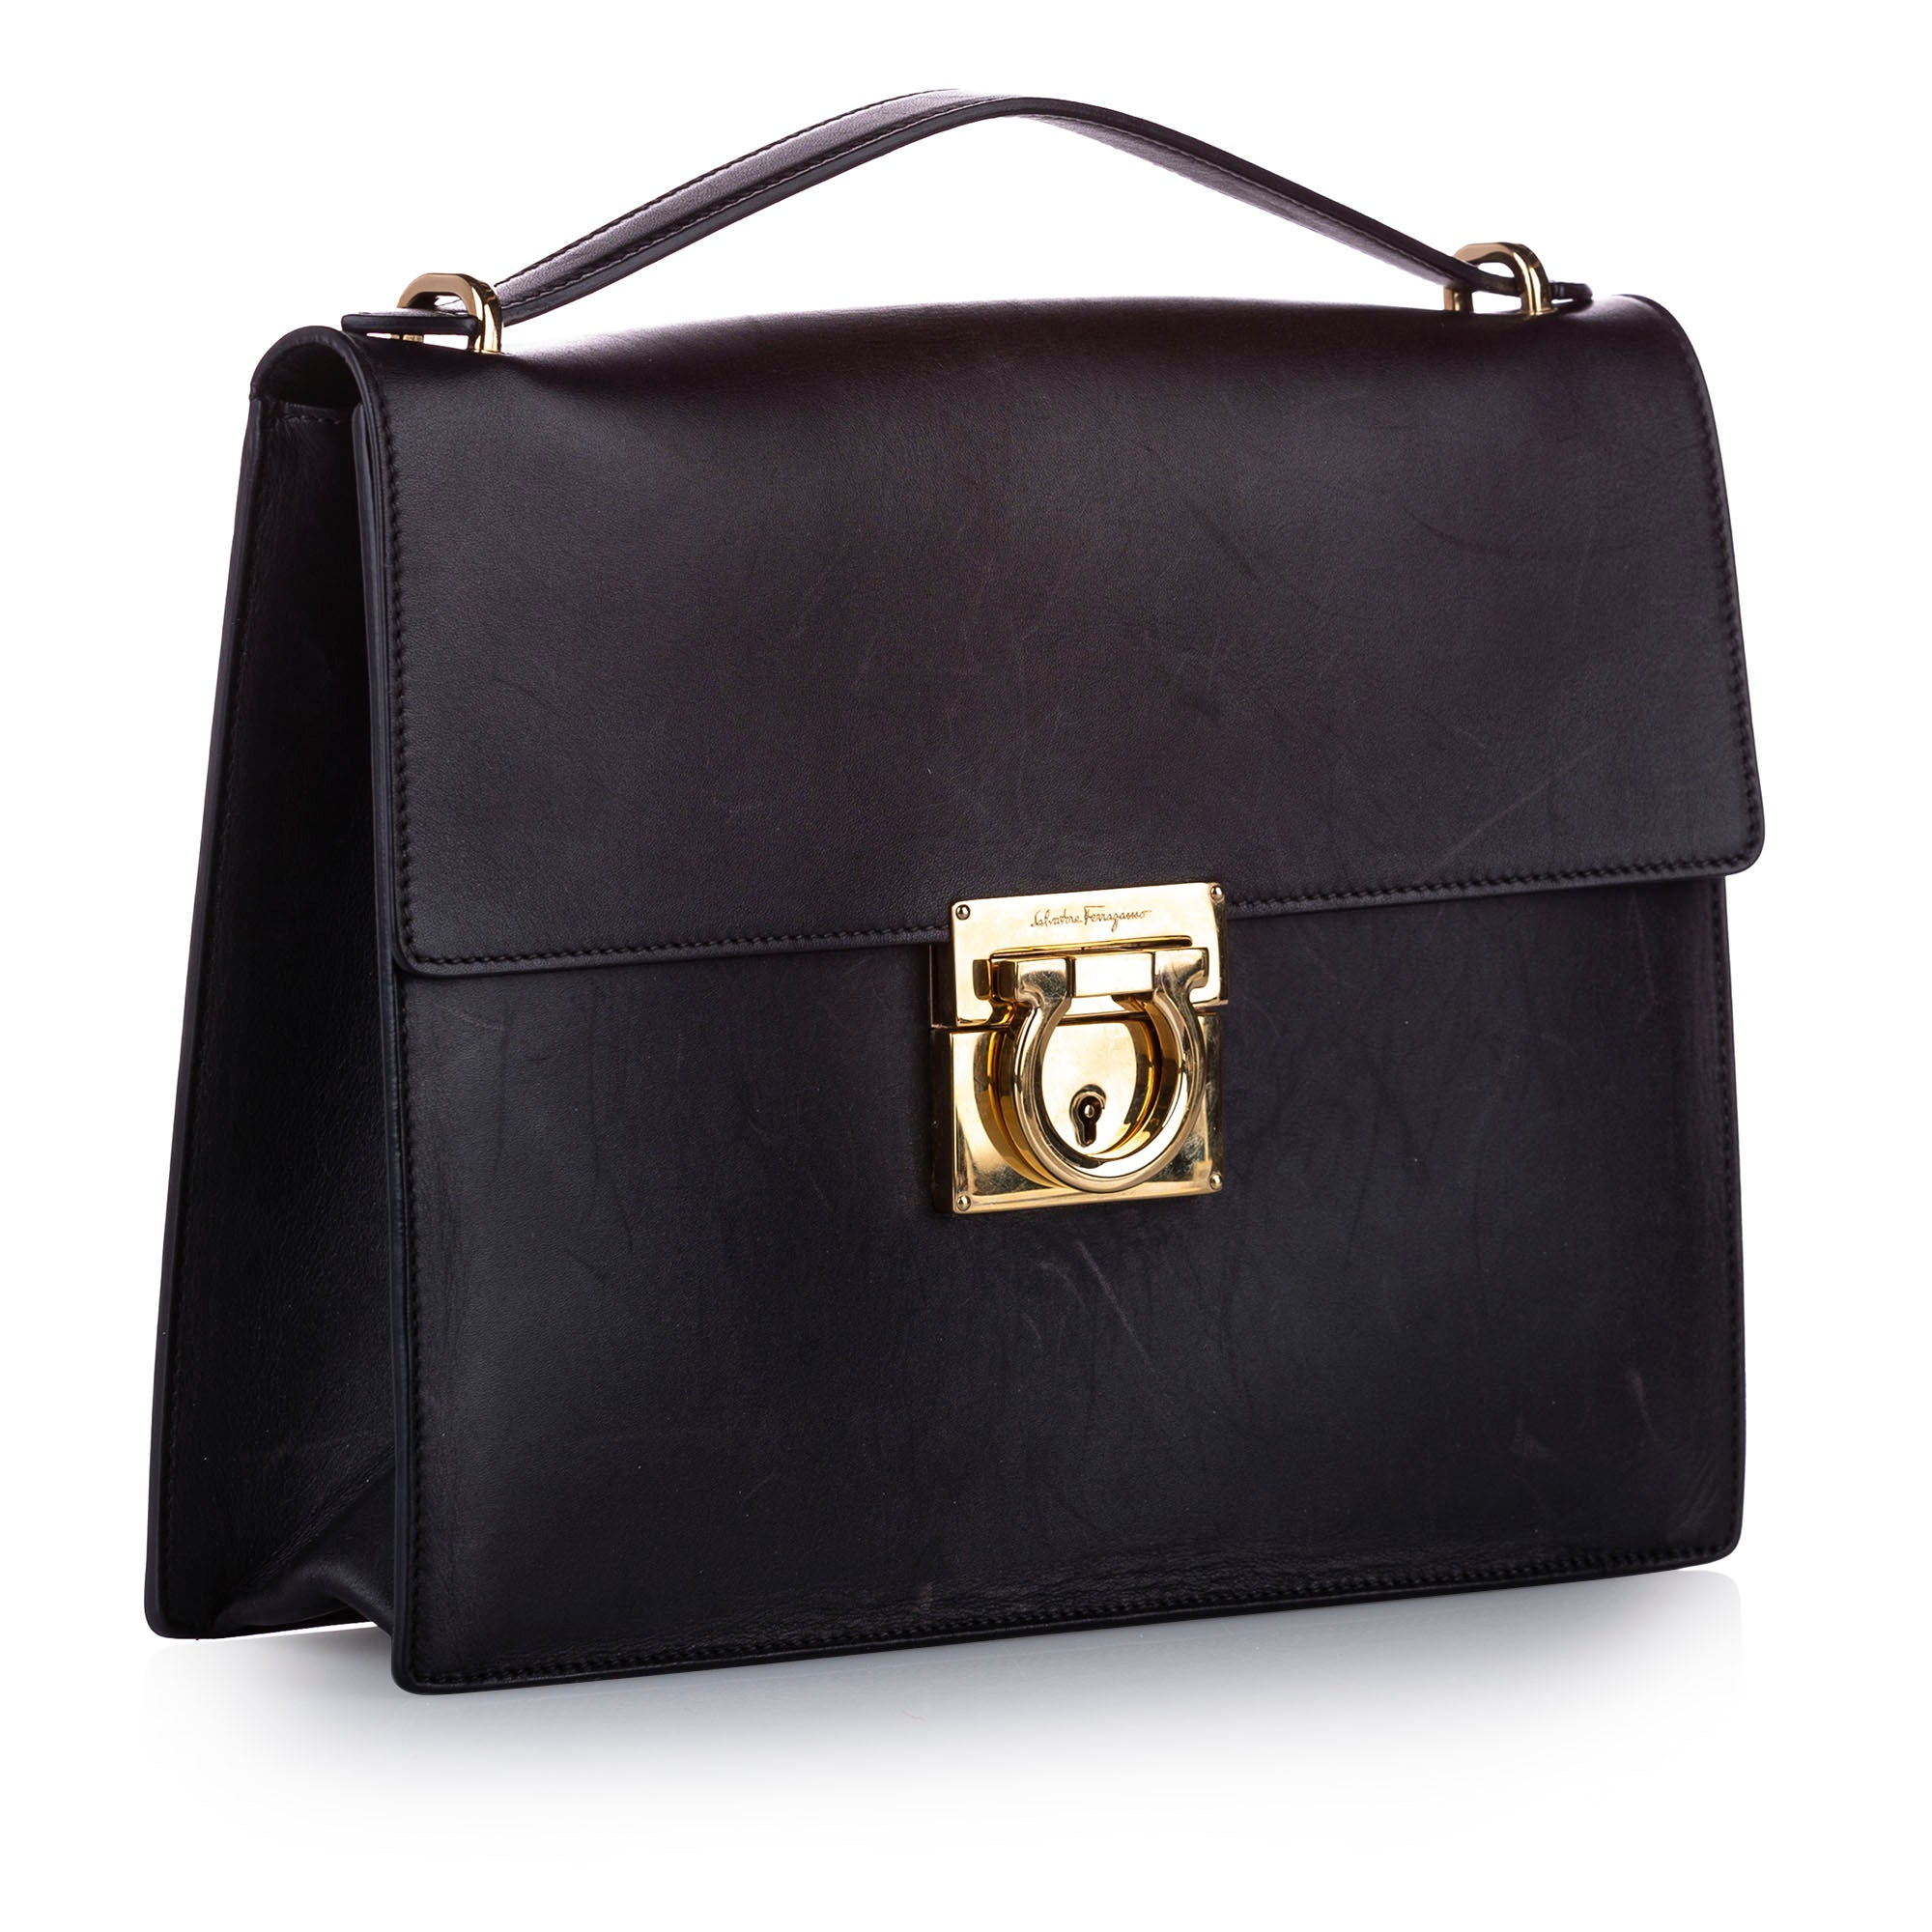 Ferragamo Black Gancini Leather Satchel